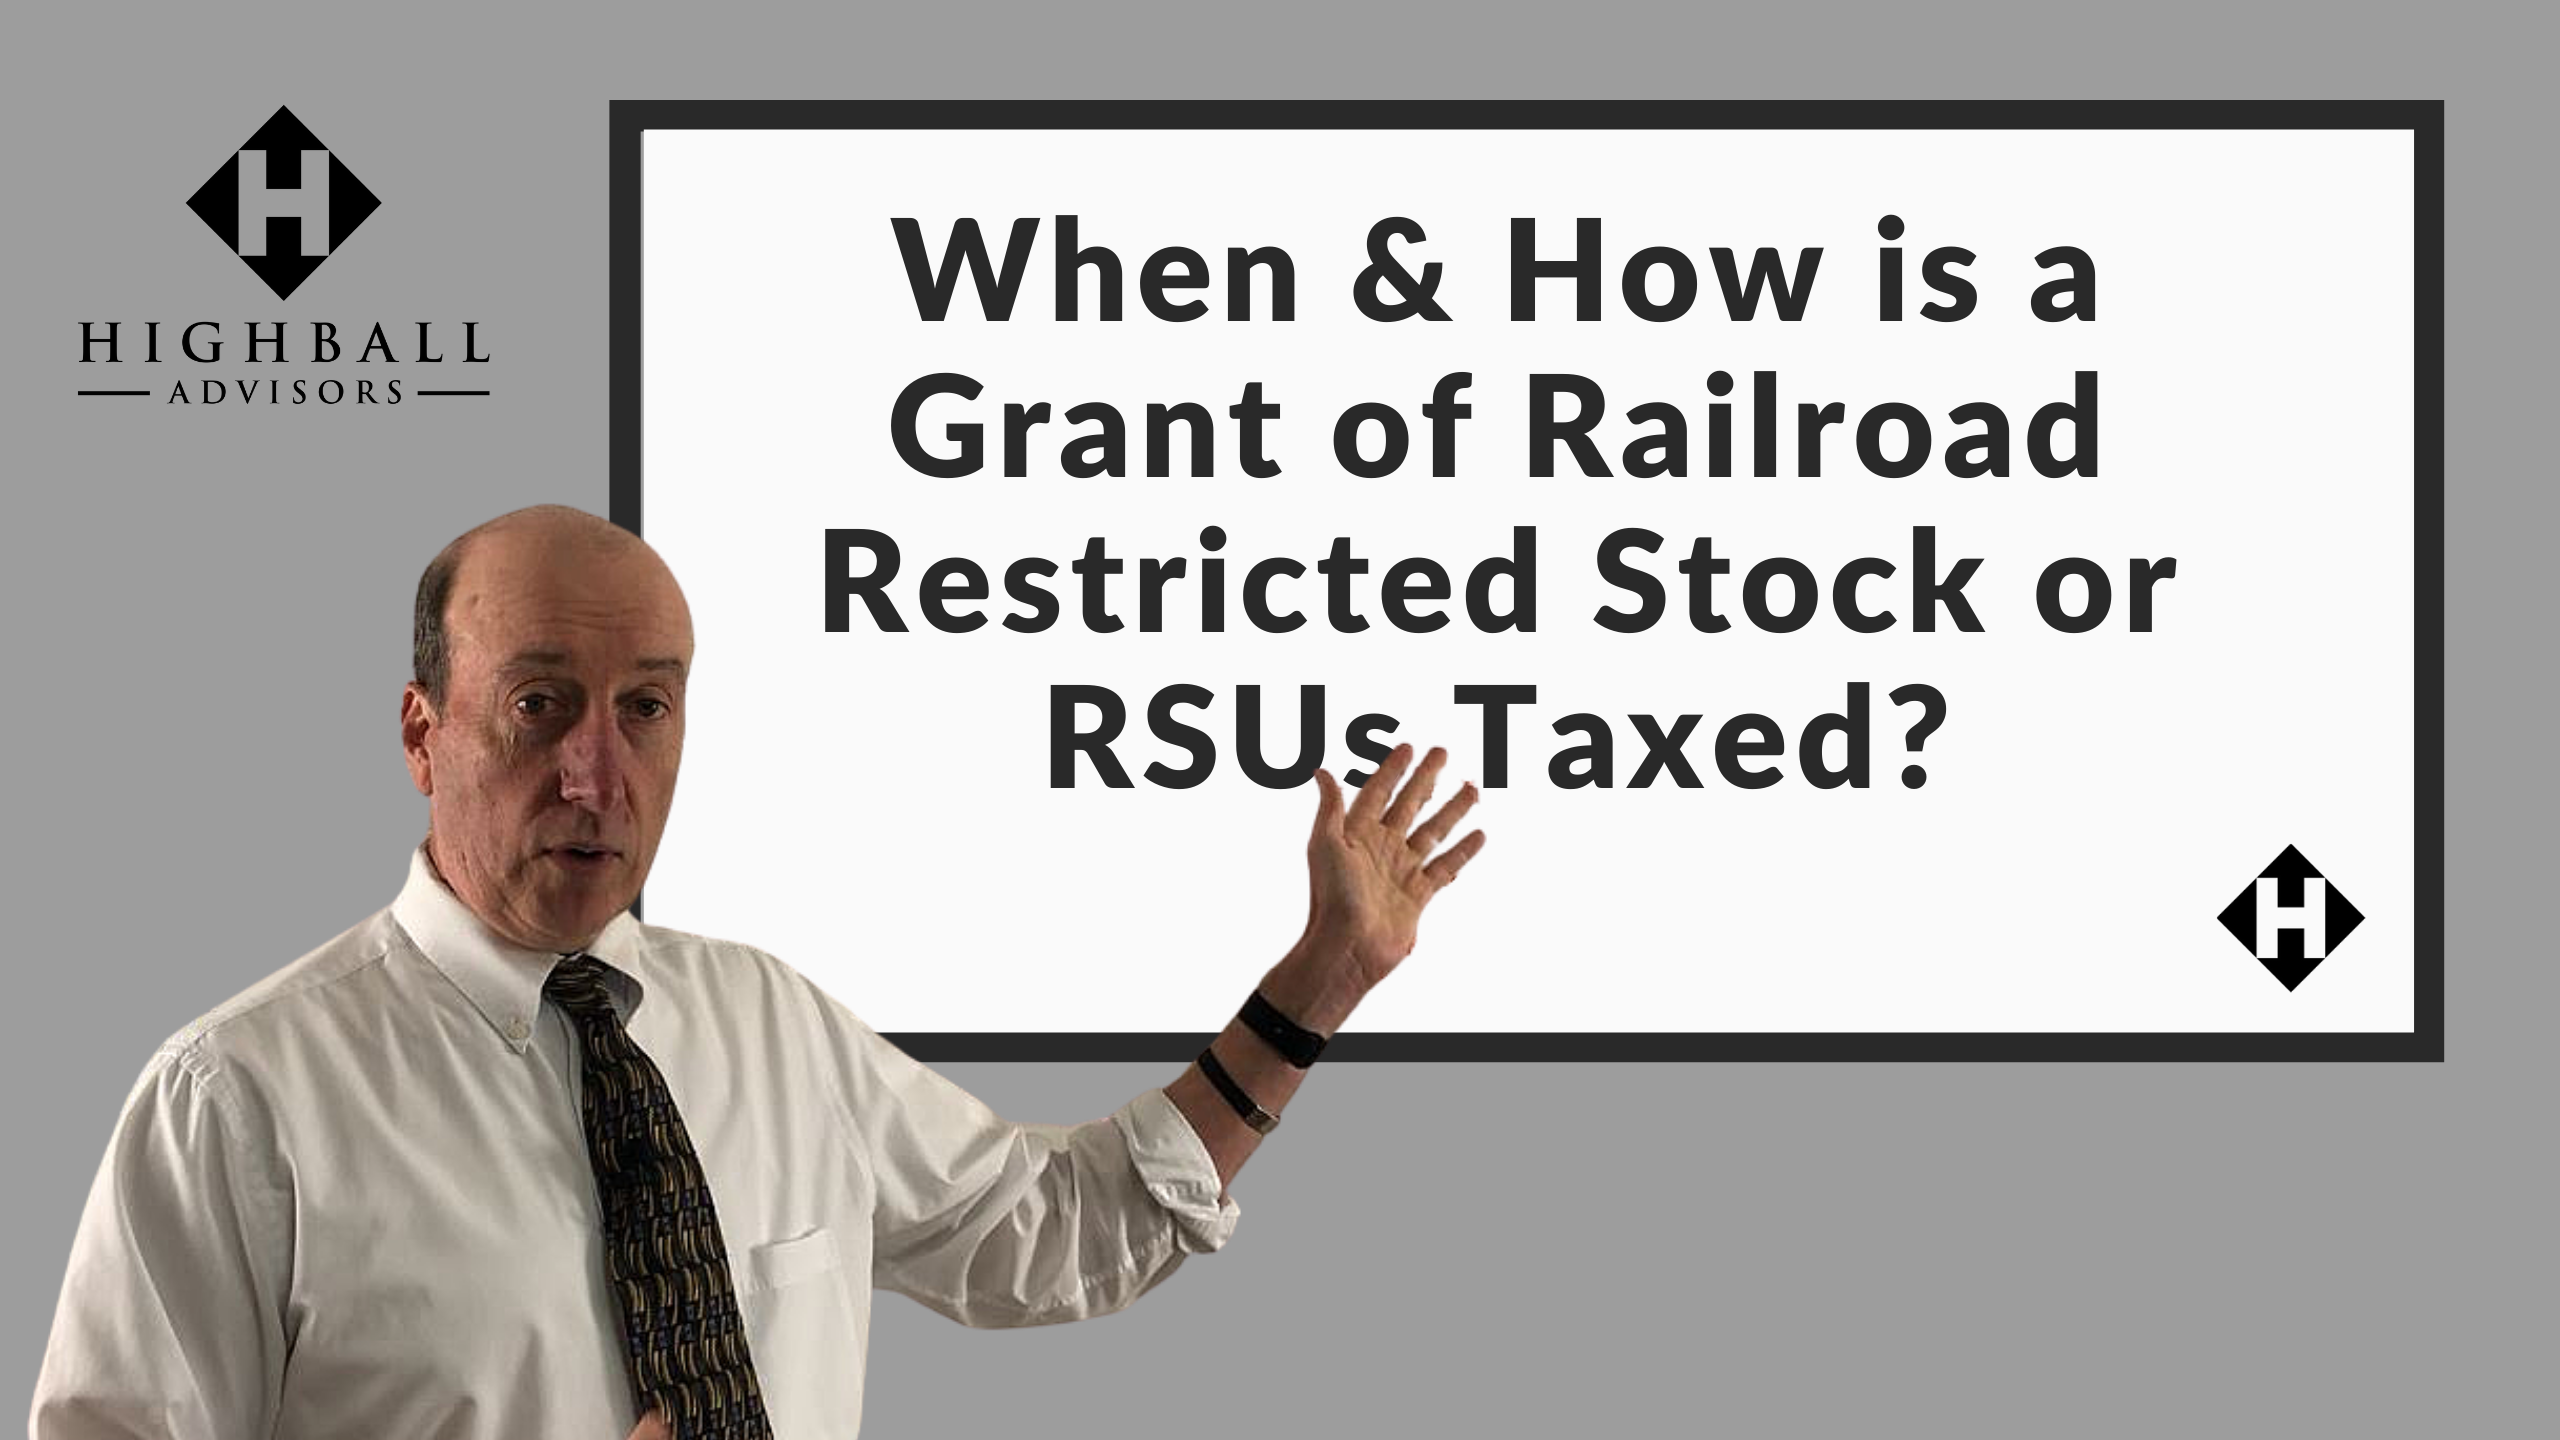 When & How is a Grant of Railroad Restricted Stock or RSUs Taxed? Thumbnail